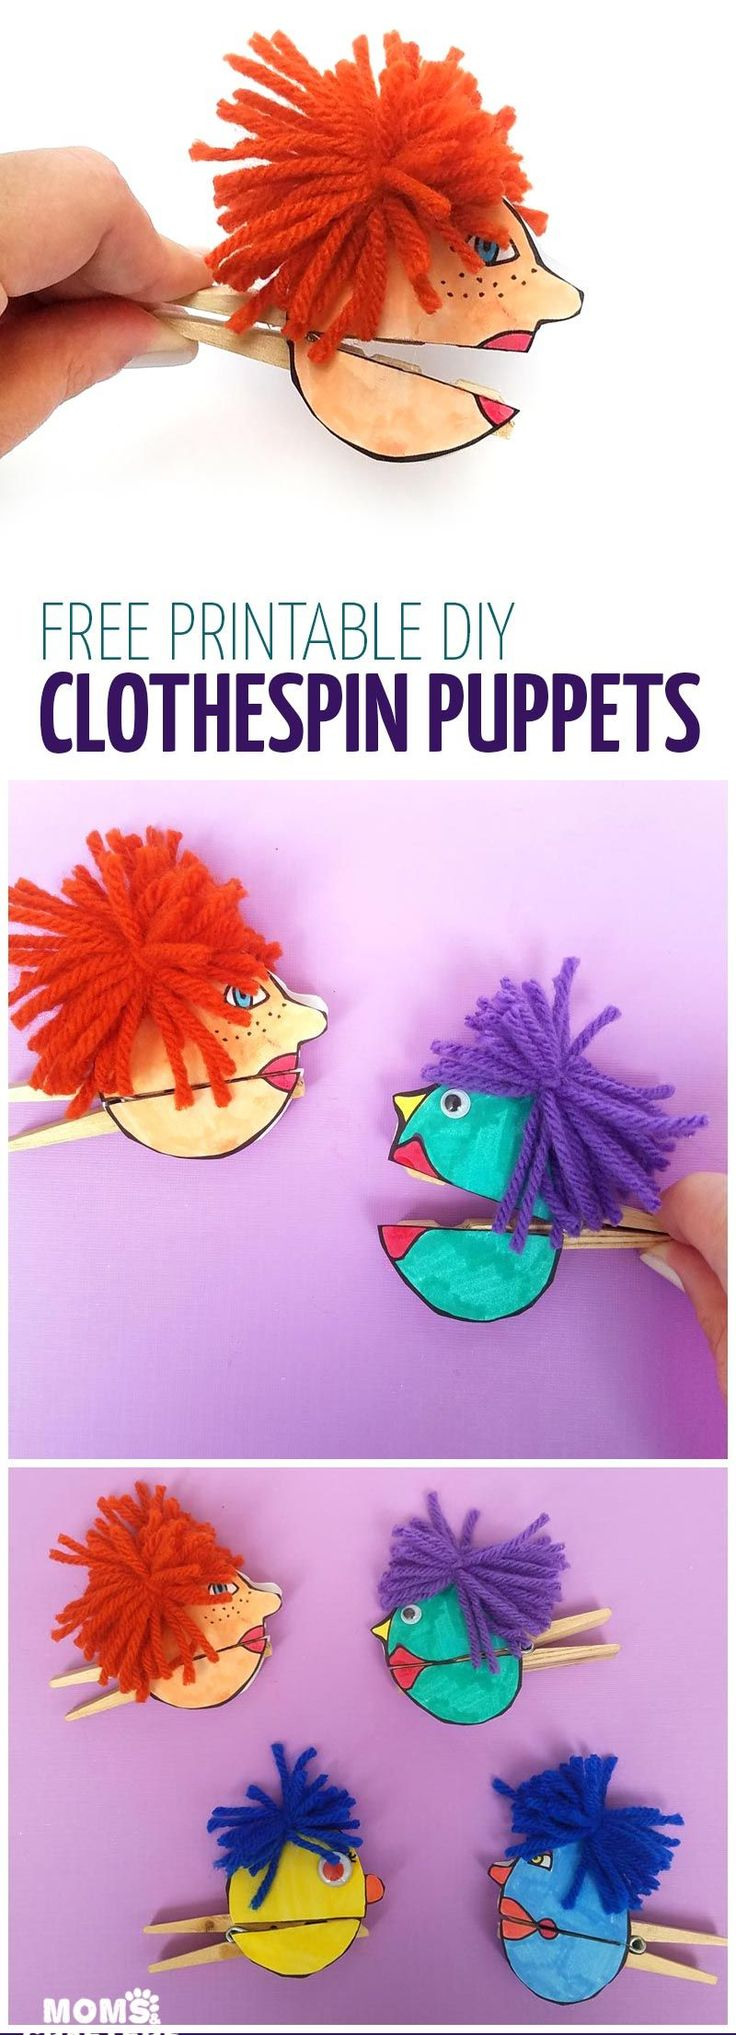 Craft these quirky paper puppets